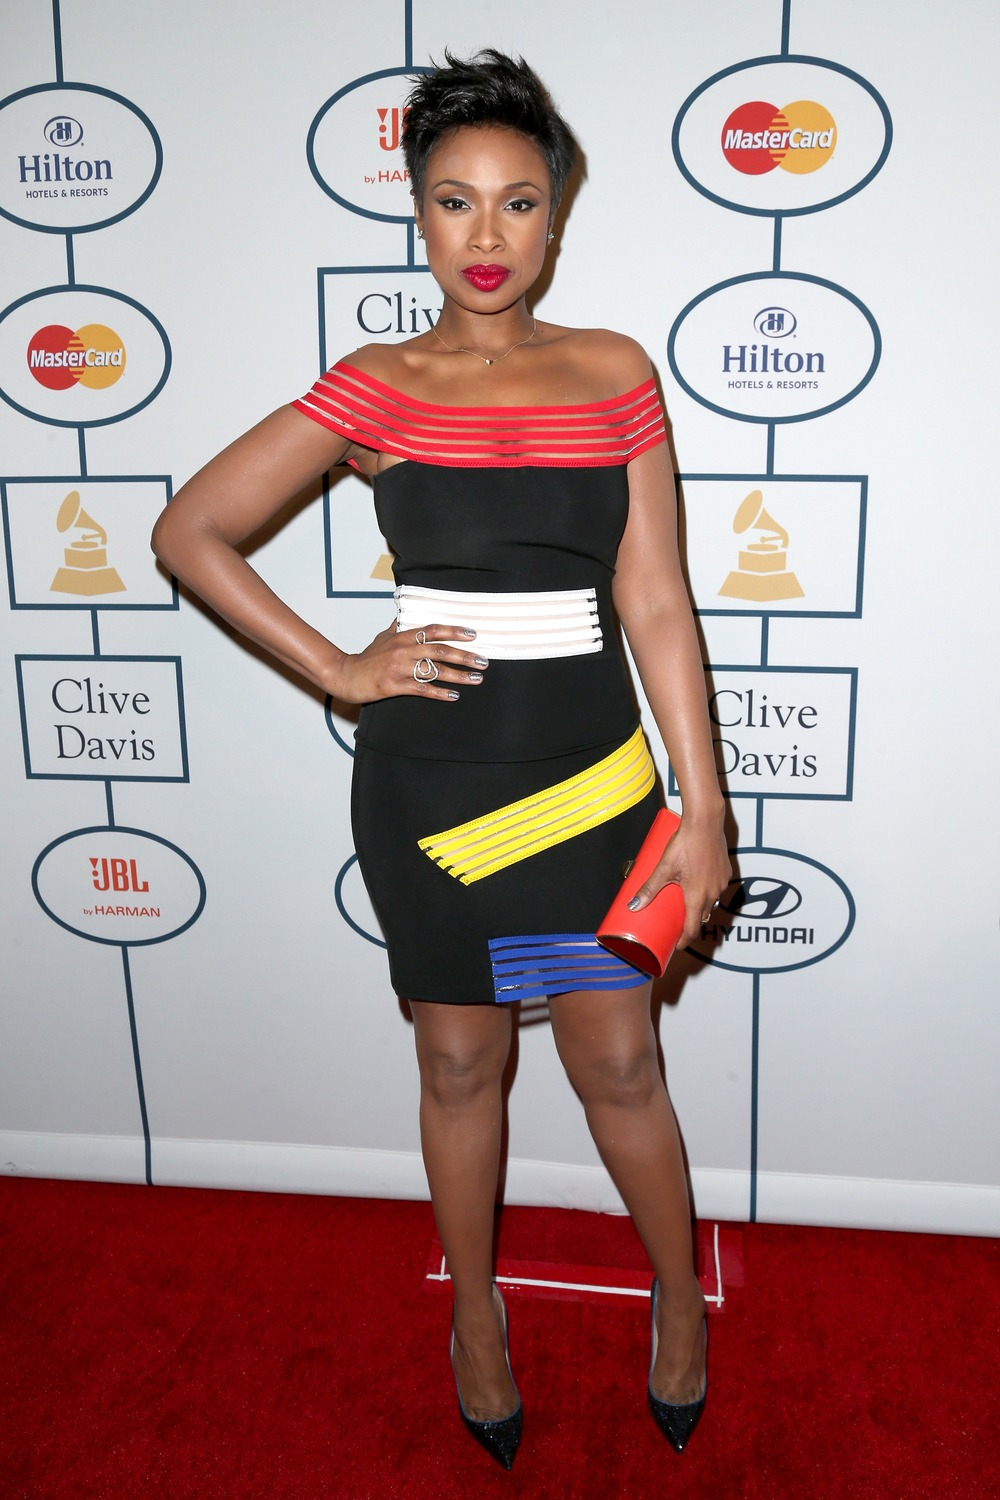 Jennifer Hudson Releases New Single Featuring Timbaland — Listen Here!